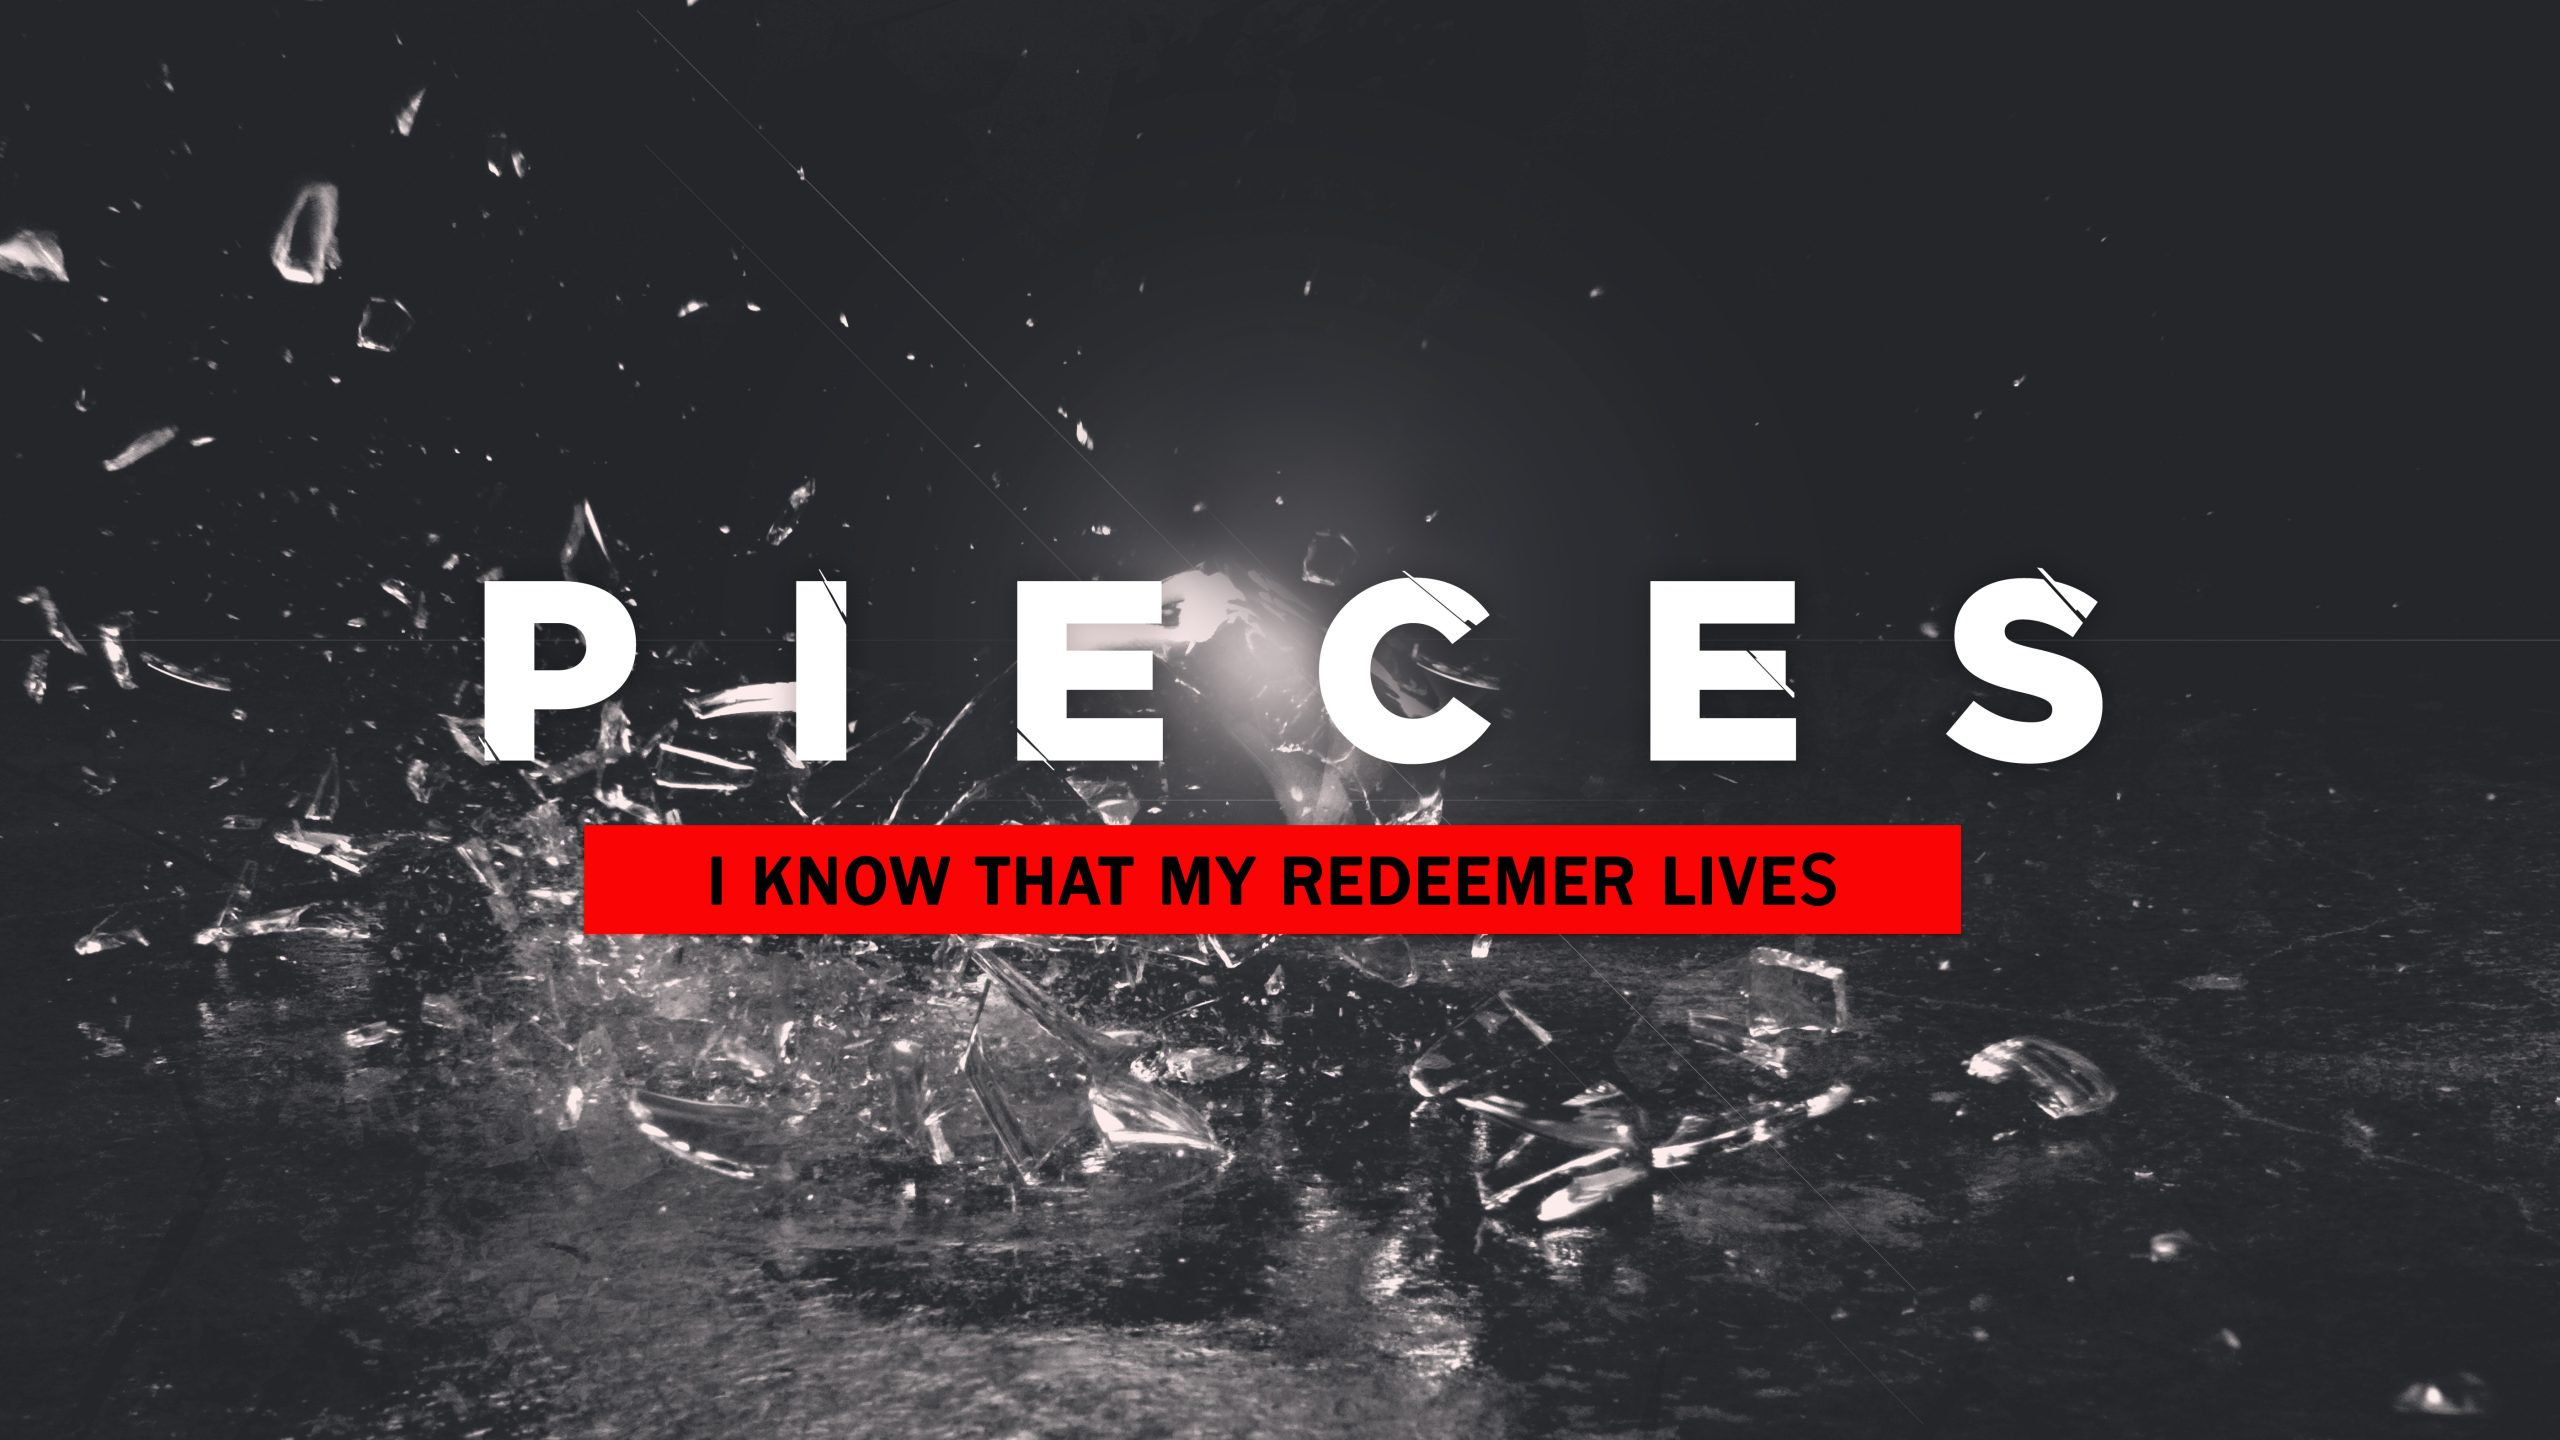 Pieces: I Know My Redeemer Lives